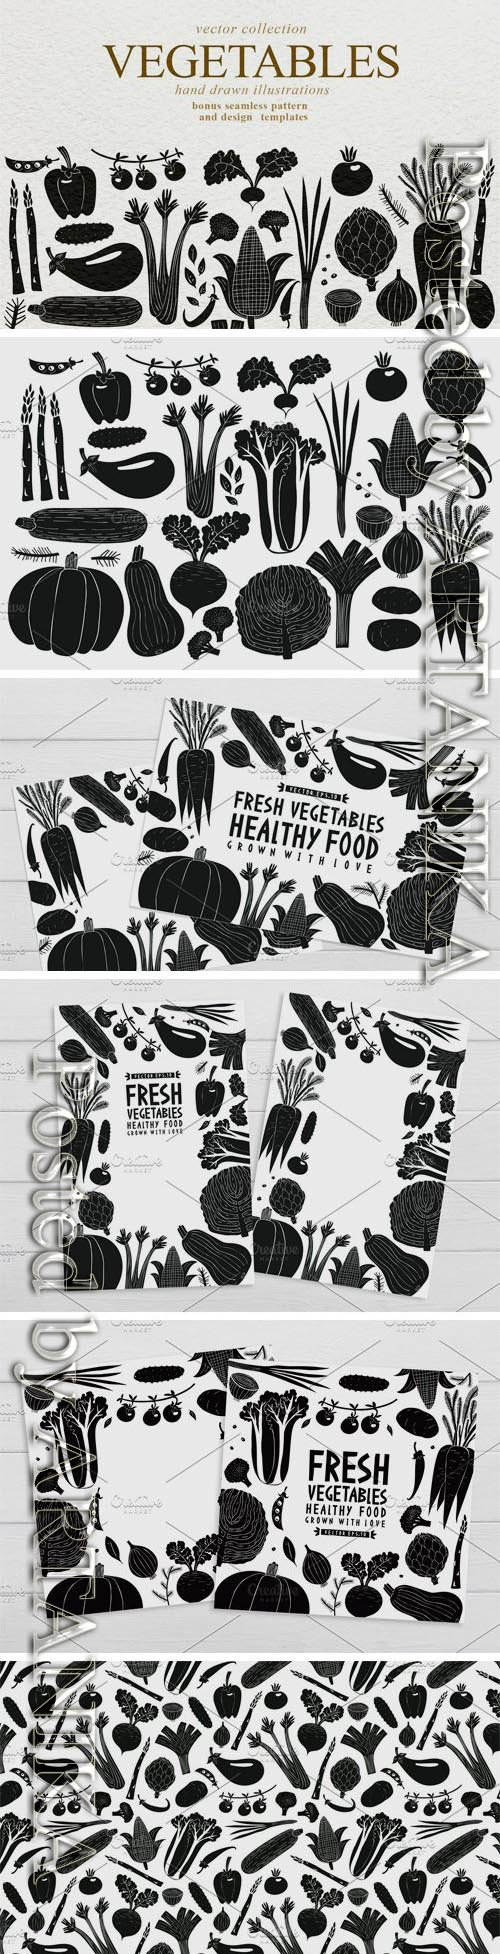 CM - Vegetables Vector Collection 3509708